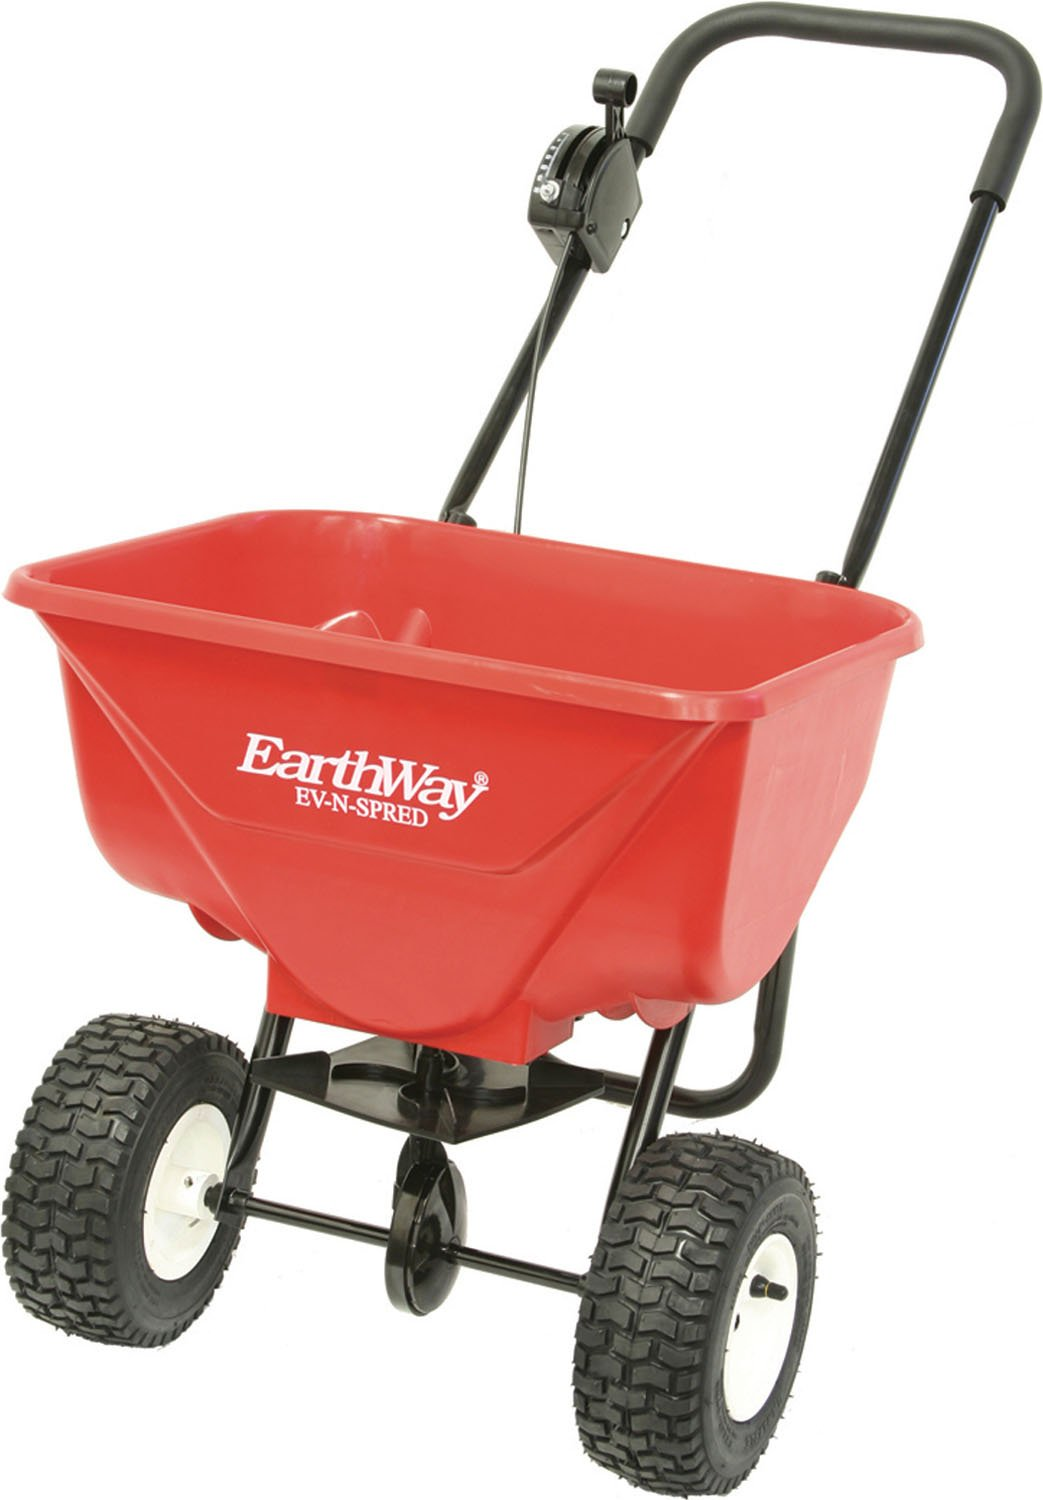 Earthway Deluxe Lawn & Garden Spreader 2030PPlus (with 9-Inch Pneumatic Wheels